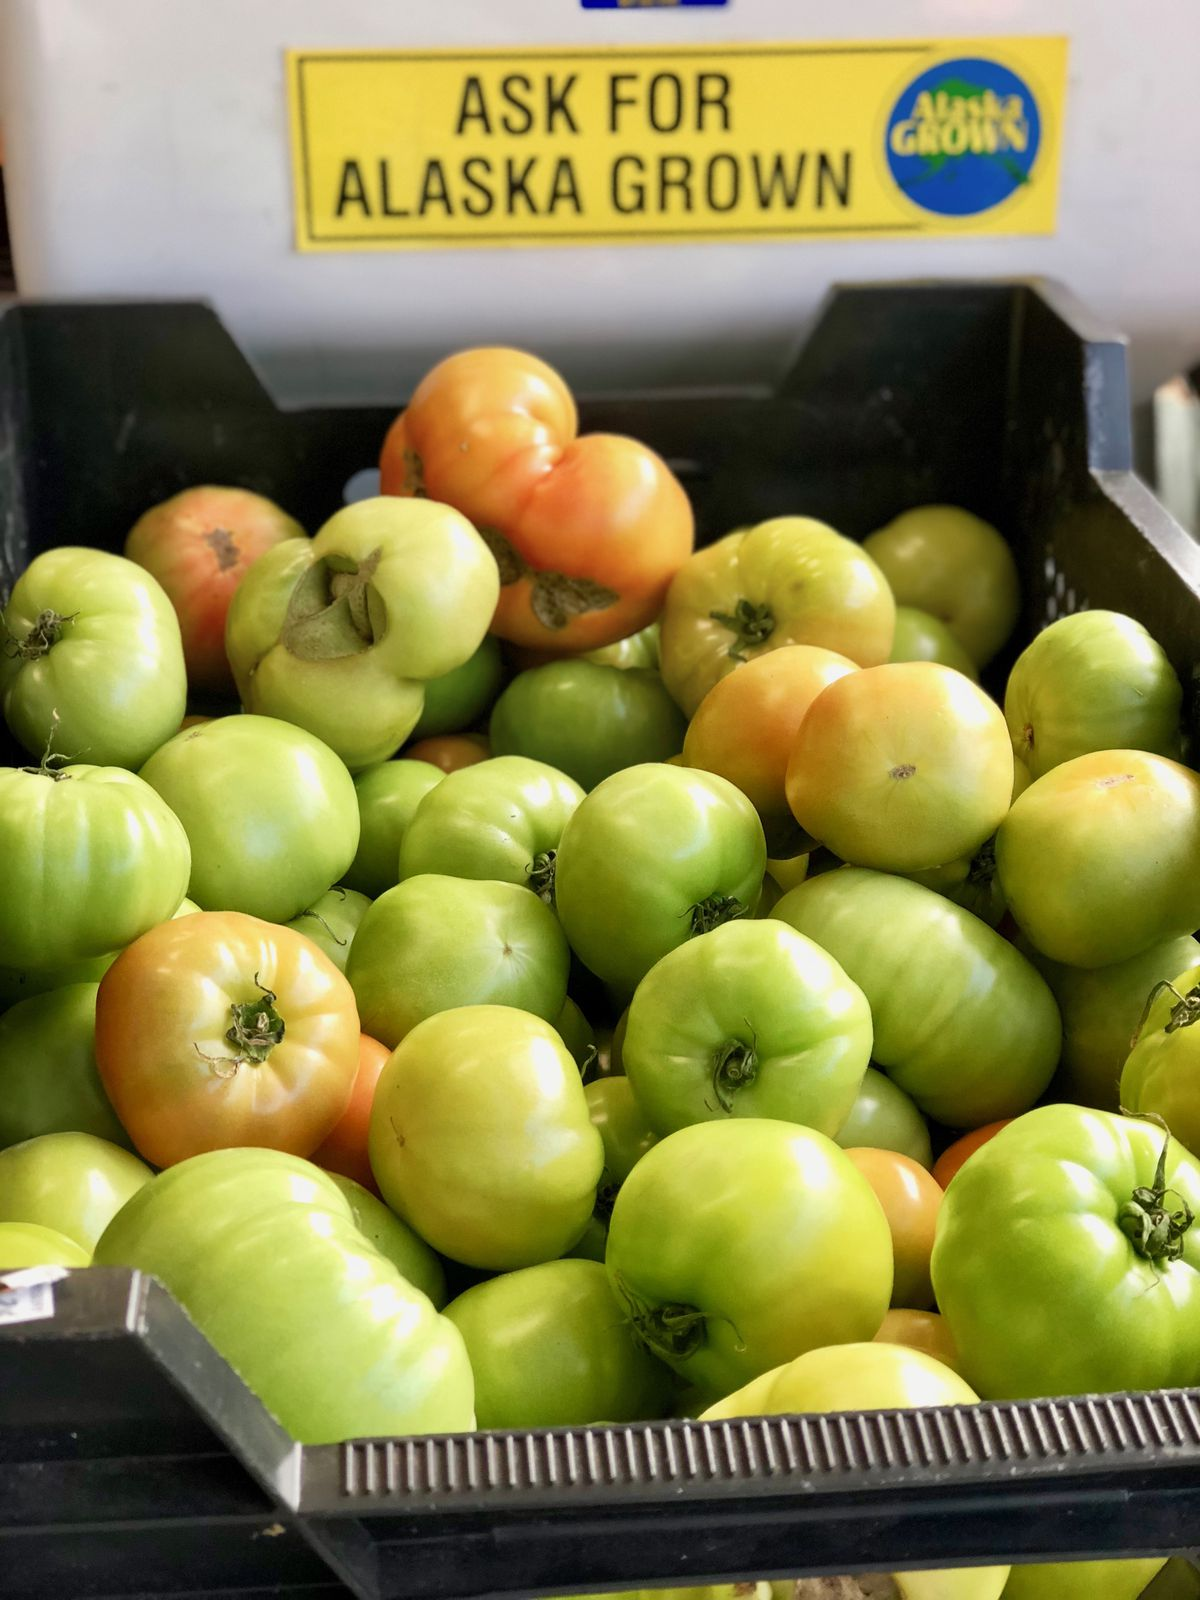 Green tomatoes at Bell's Nursery in Anchorage, June 12, 2018. (Photo by Kim Sunée)